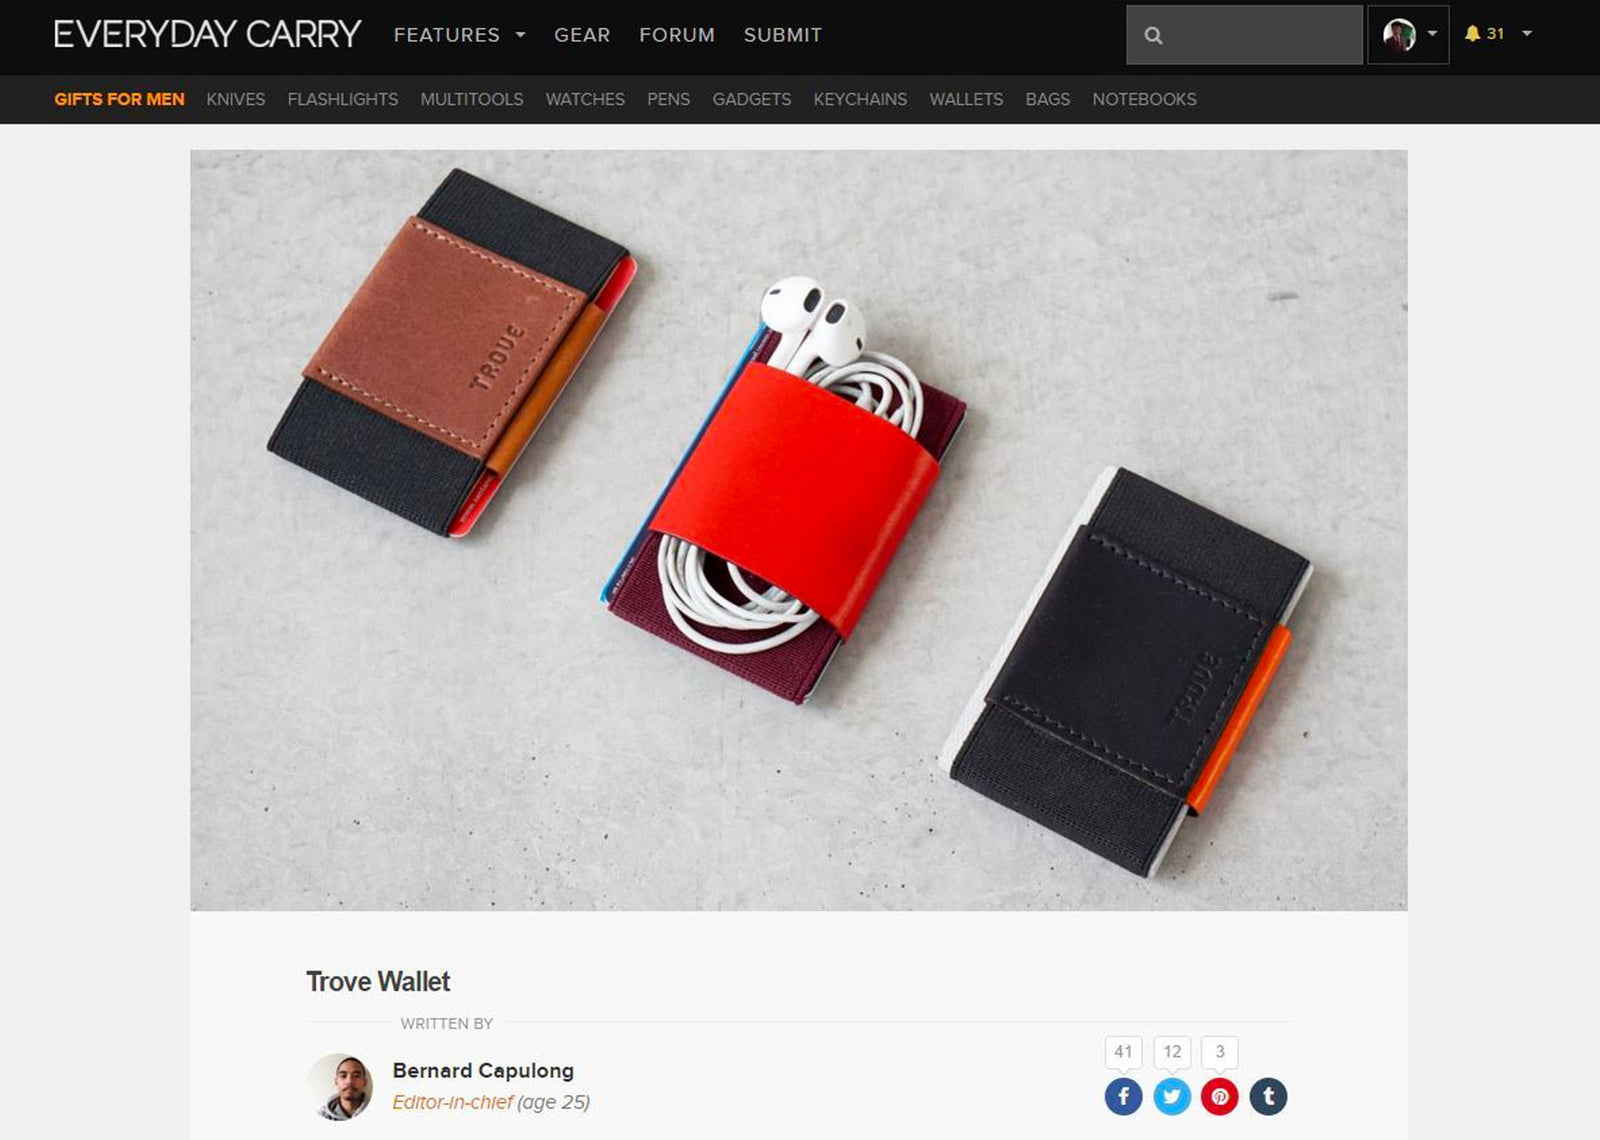 Review by Everydaycarry.com